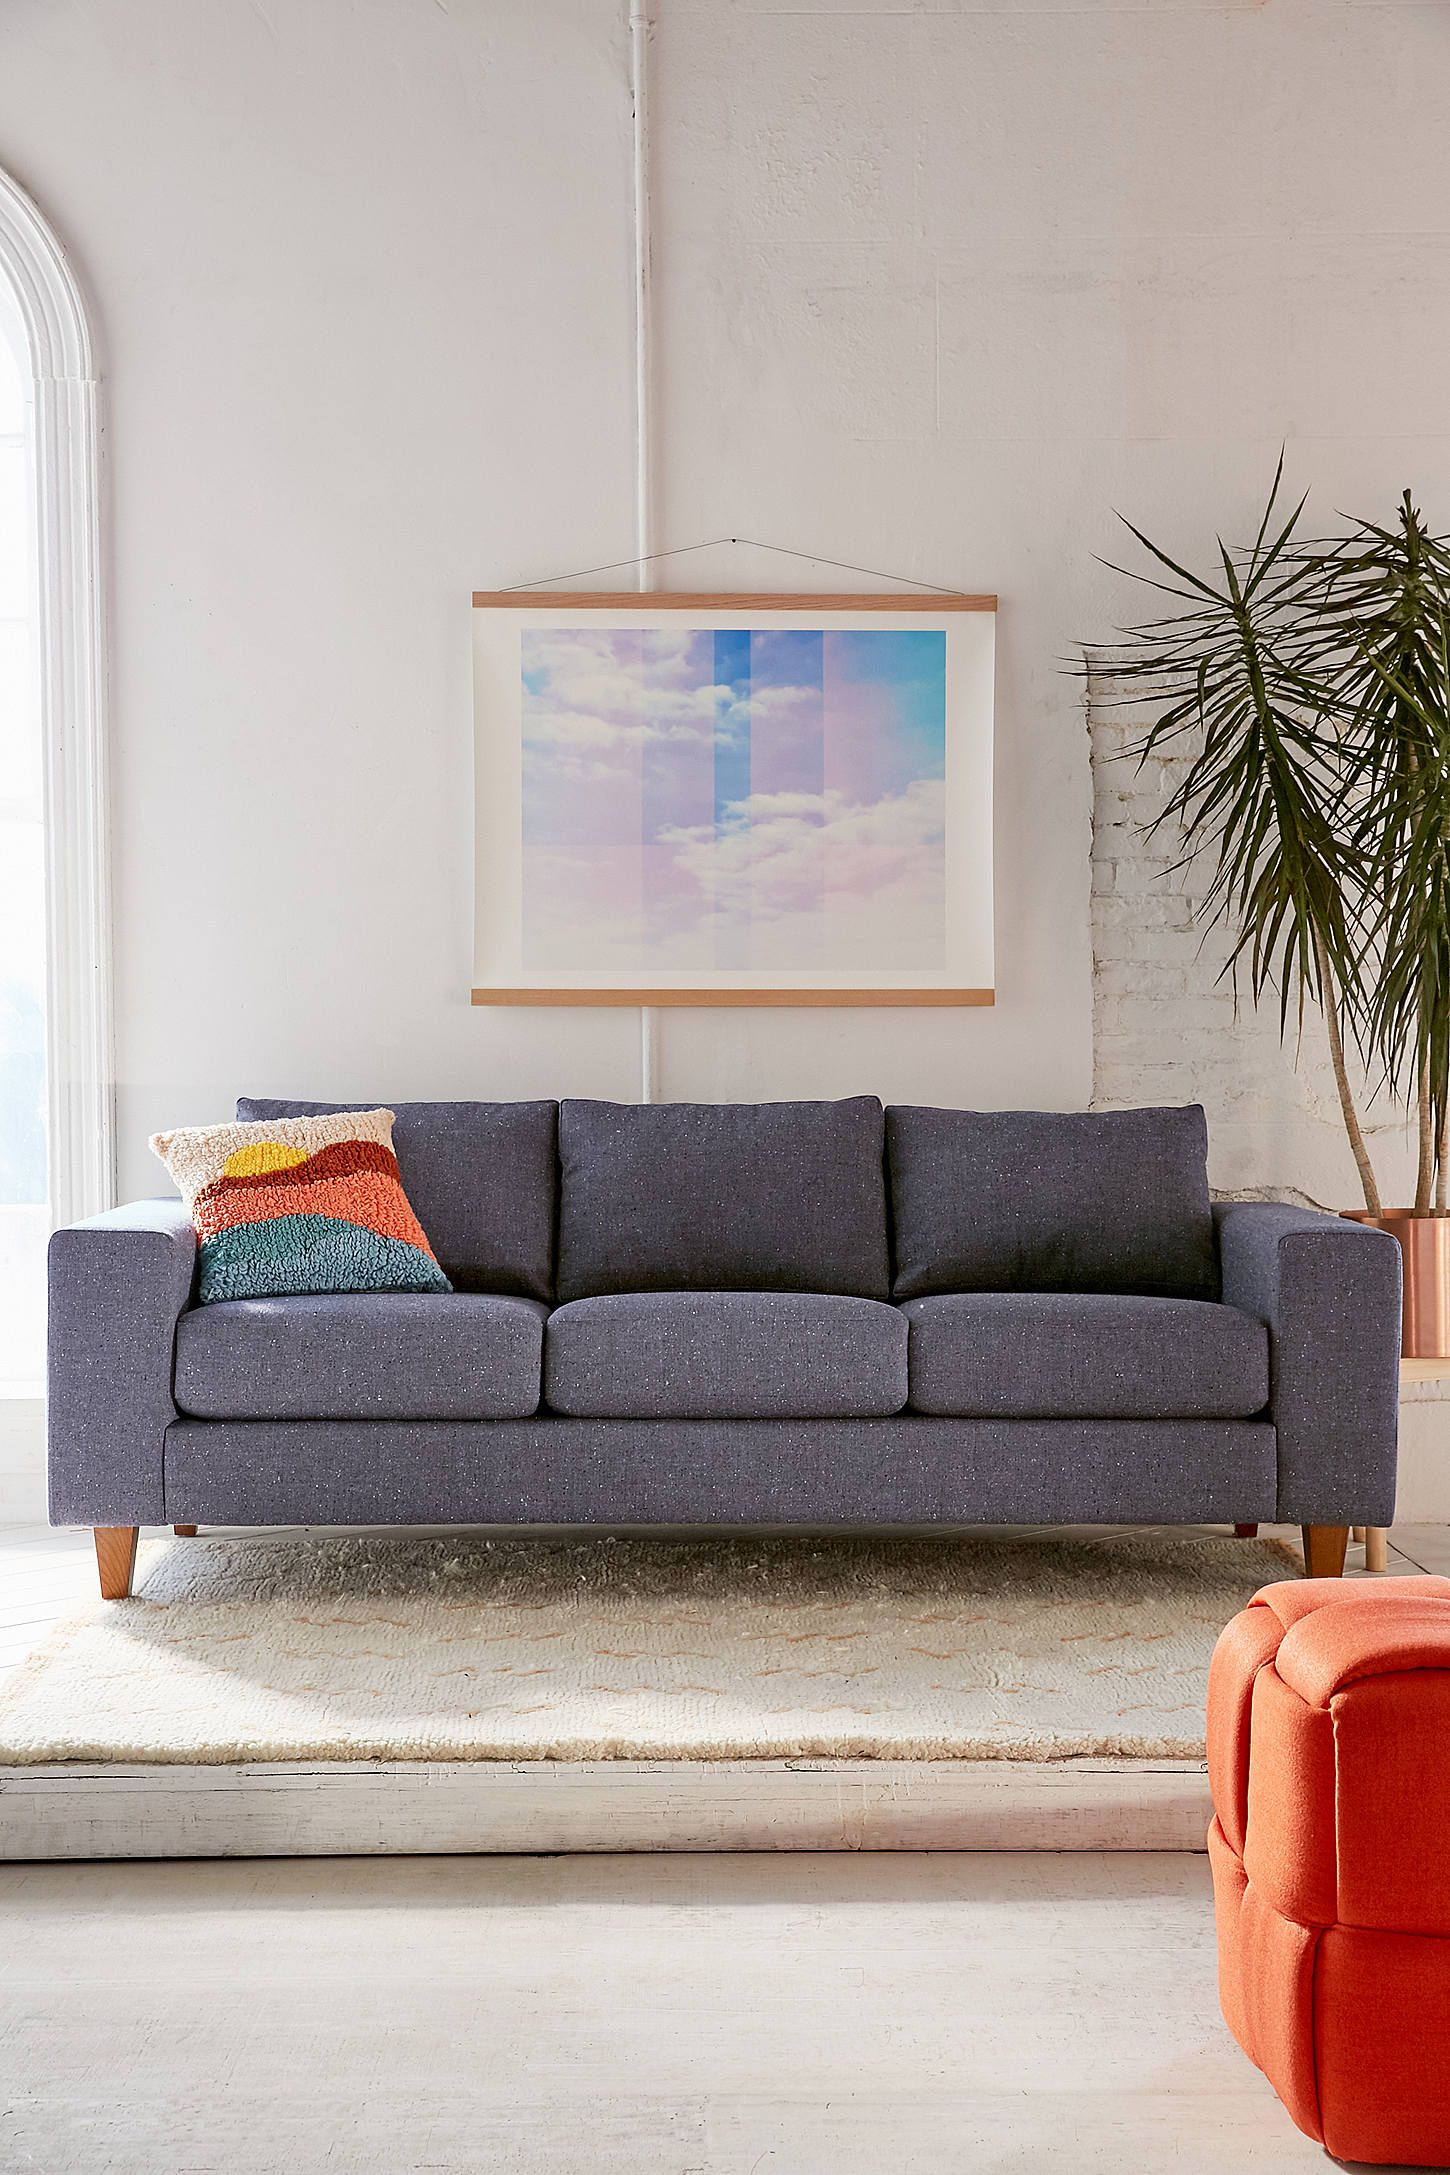 Sofa And More Triangle Table Percey Tweed Future Apartment Things Pinterest Shop The Urban Outfitters At Read Customer Reviews Discover Product Details